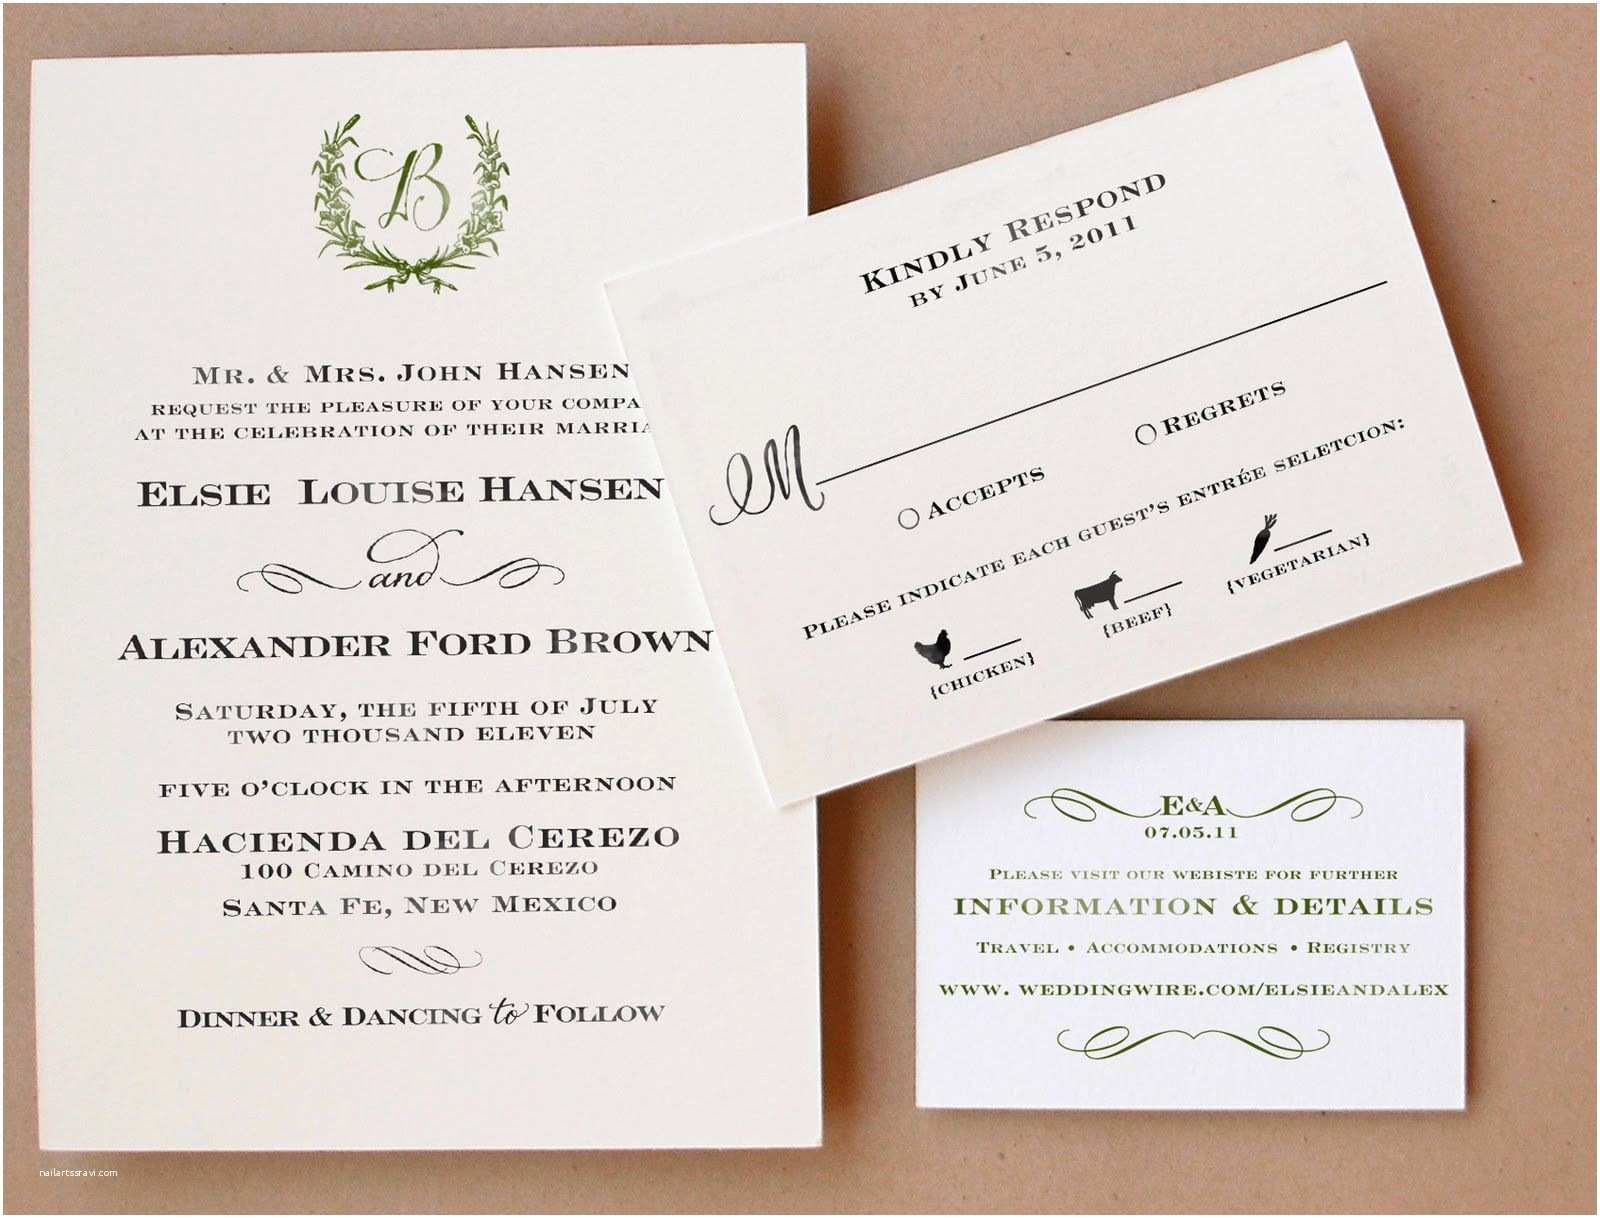 What Size are Rsvp Cards for Wedding Invitations event Invitation Wedding Invitations Reply Cards Card